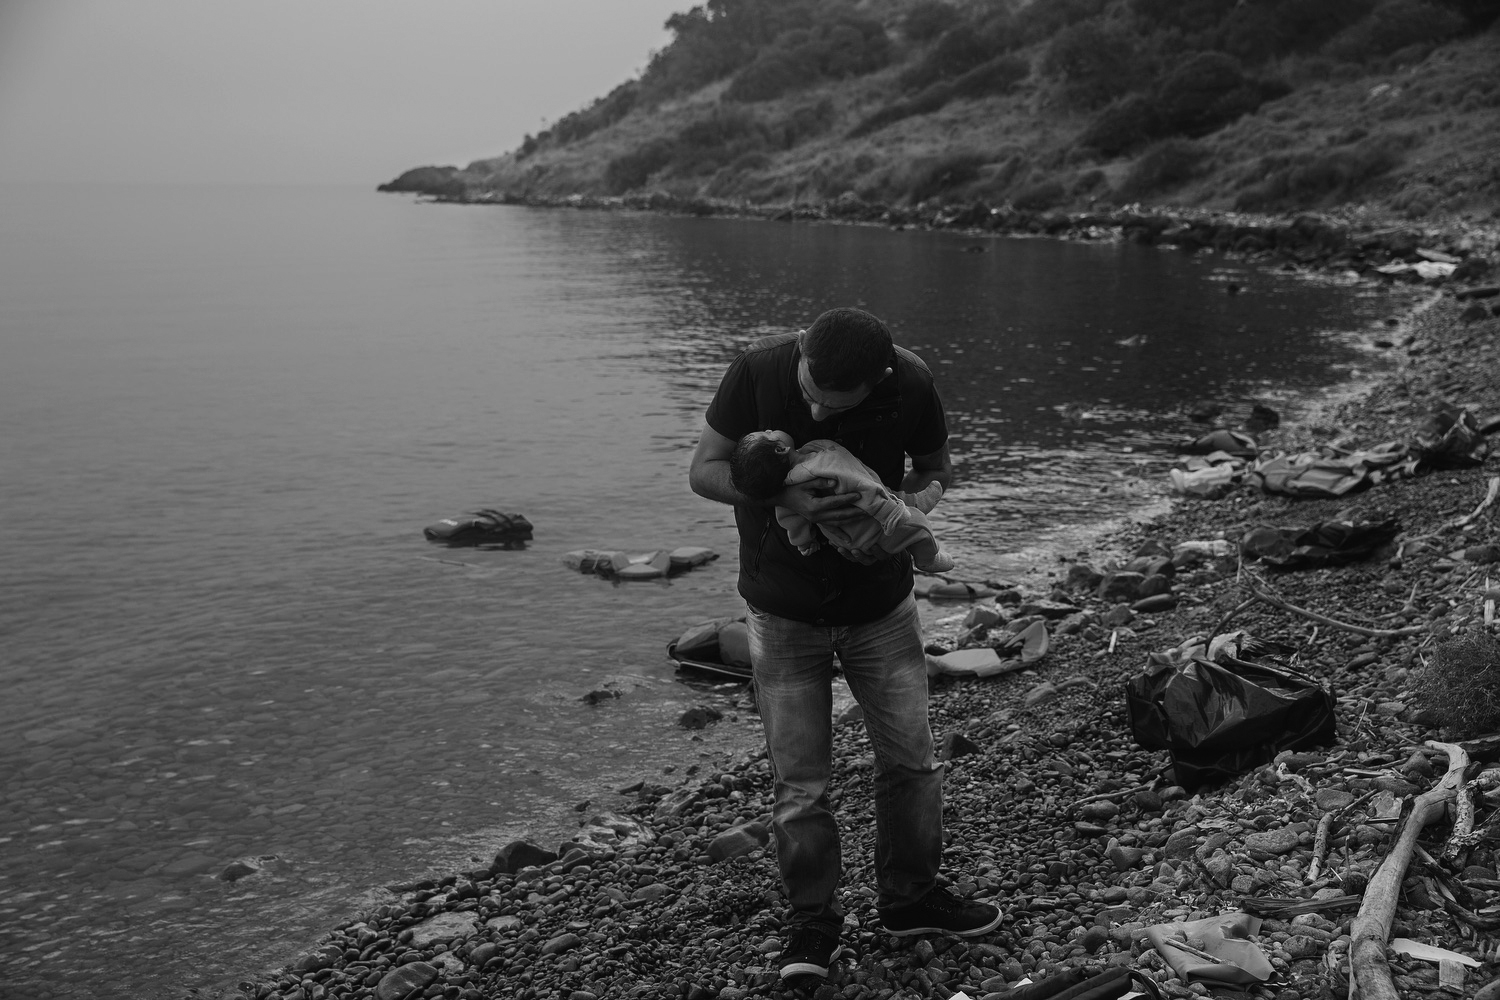 A man hold his baby on the beach in Lesbos, Greece after making the journey with his wife from Turkey, Sept. 28, 2015.